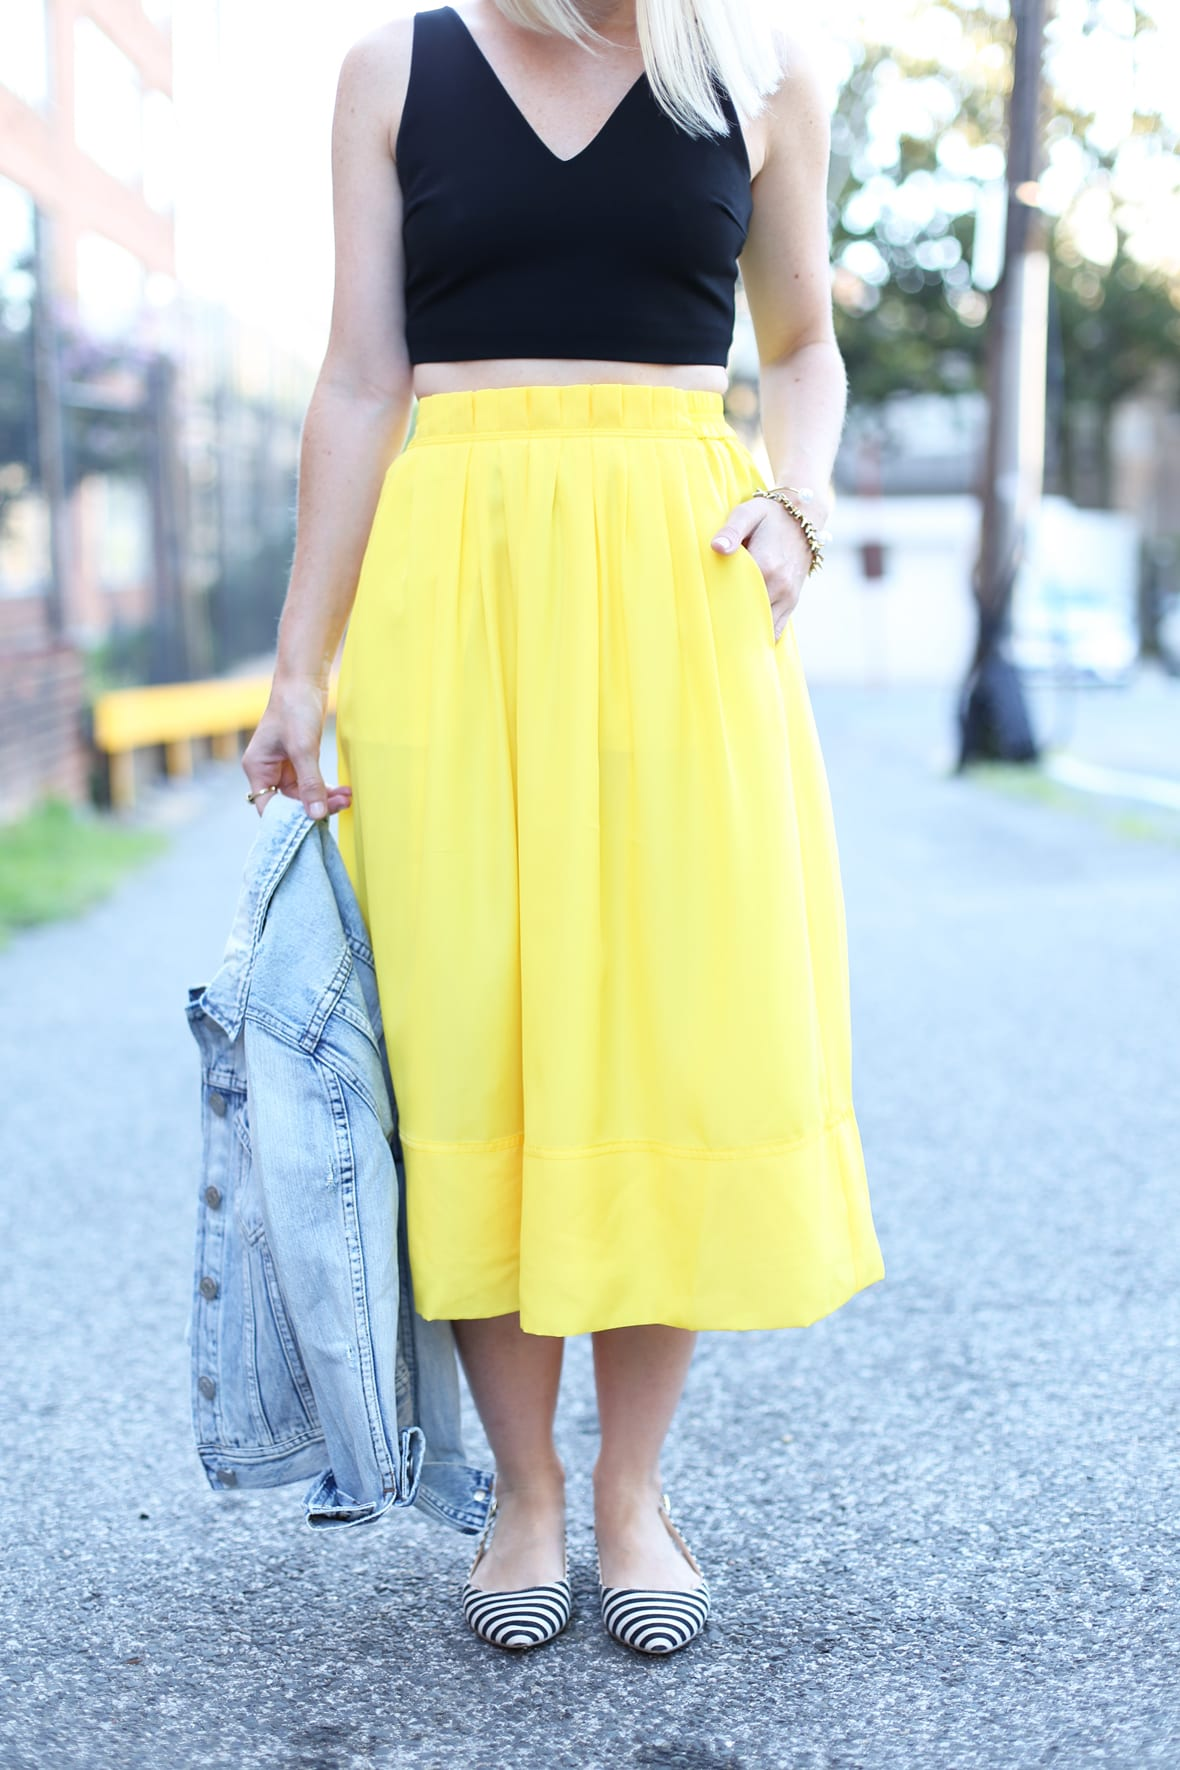 Yellow Midi Skirt and Denim Jacket on Poor Little It Girl - via @poorlilitgirl